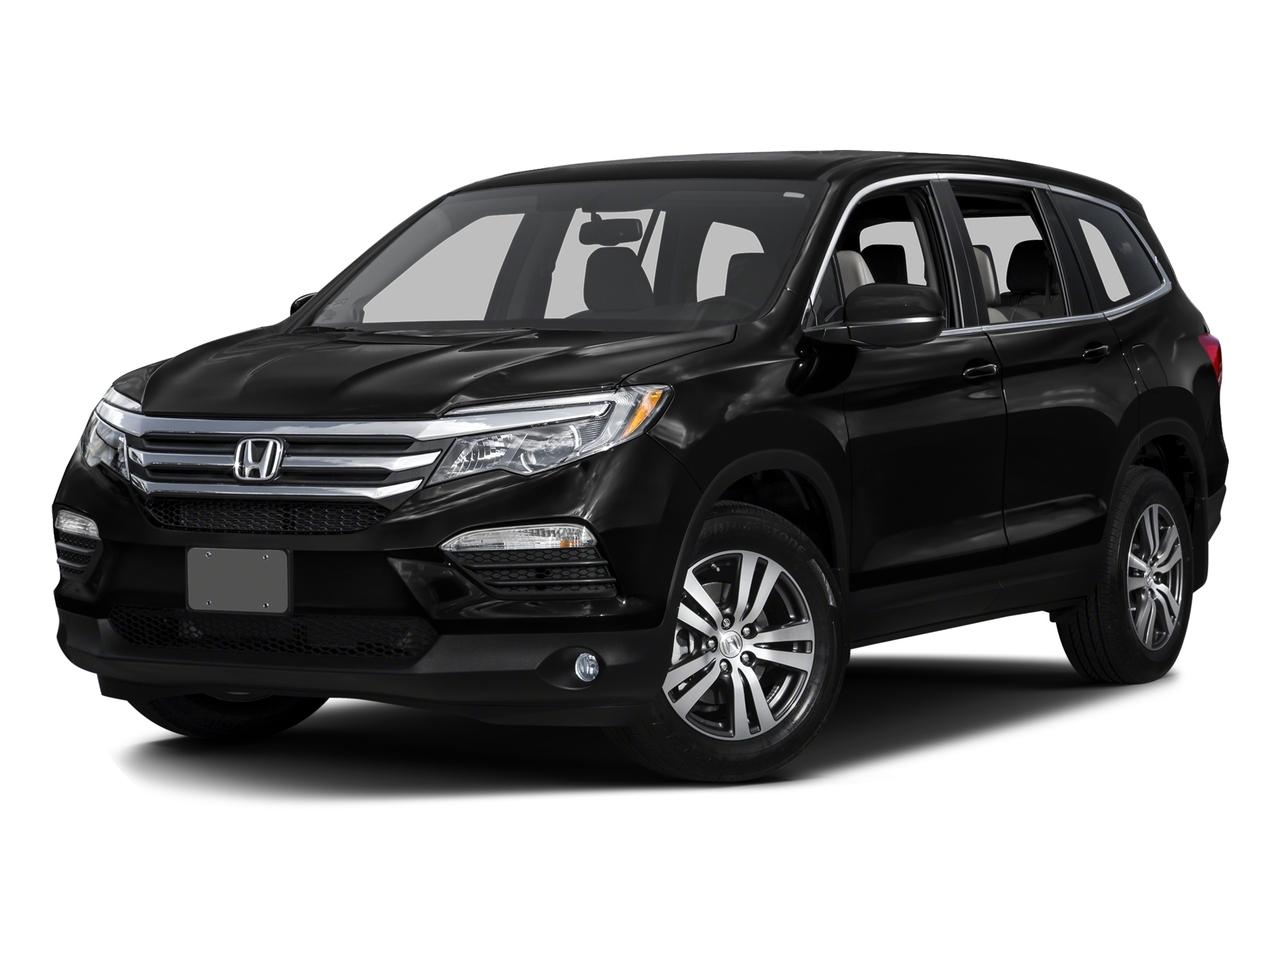 2016 Honda Pilot Vehicle Photo in Moon Township, PA 15108